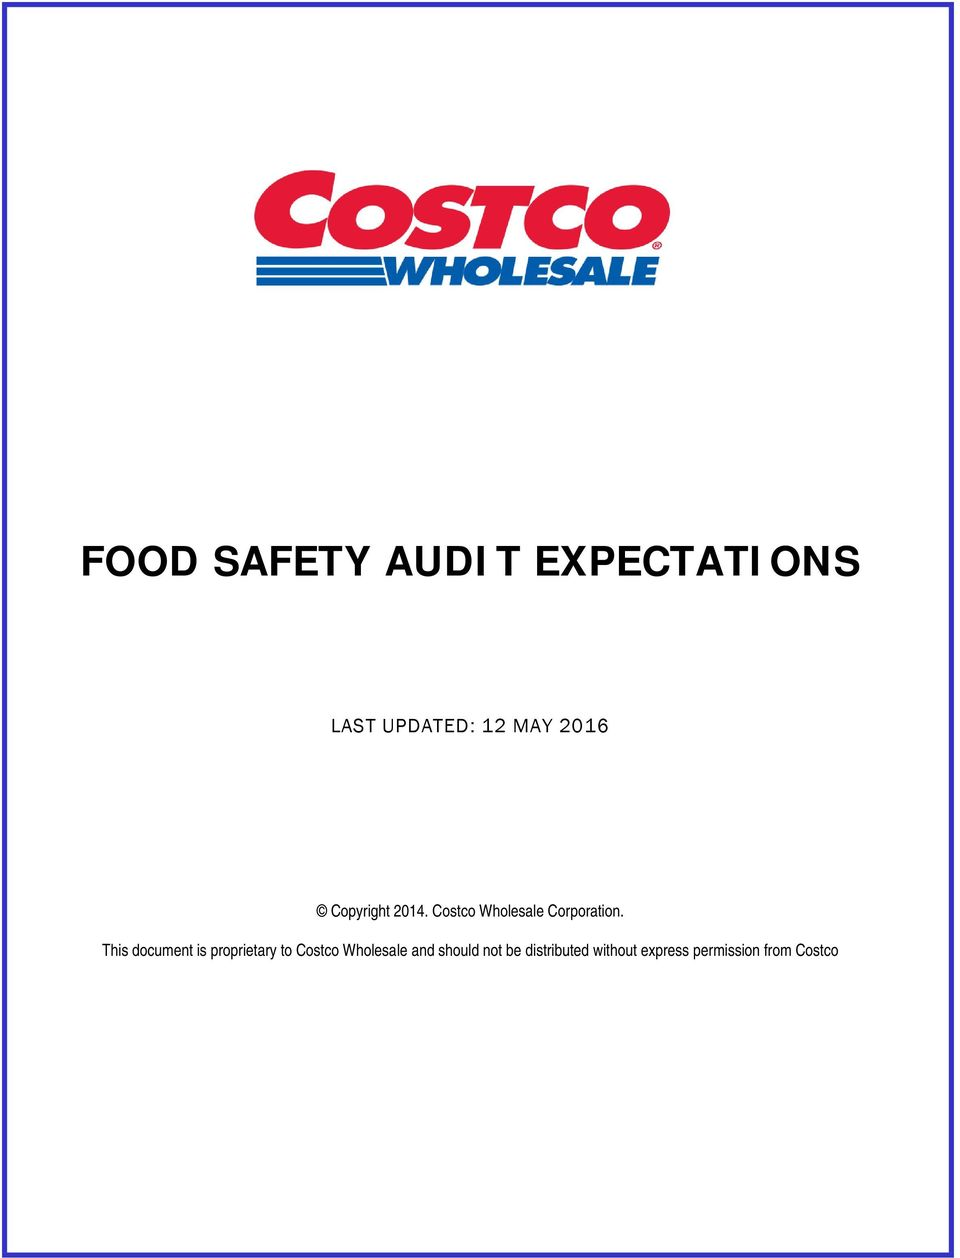 FOOD SAFETY AUDIT EXPECTATIONS - PDF